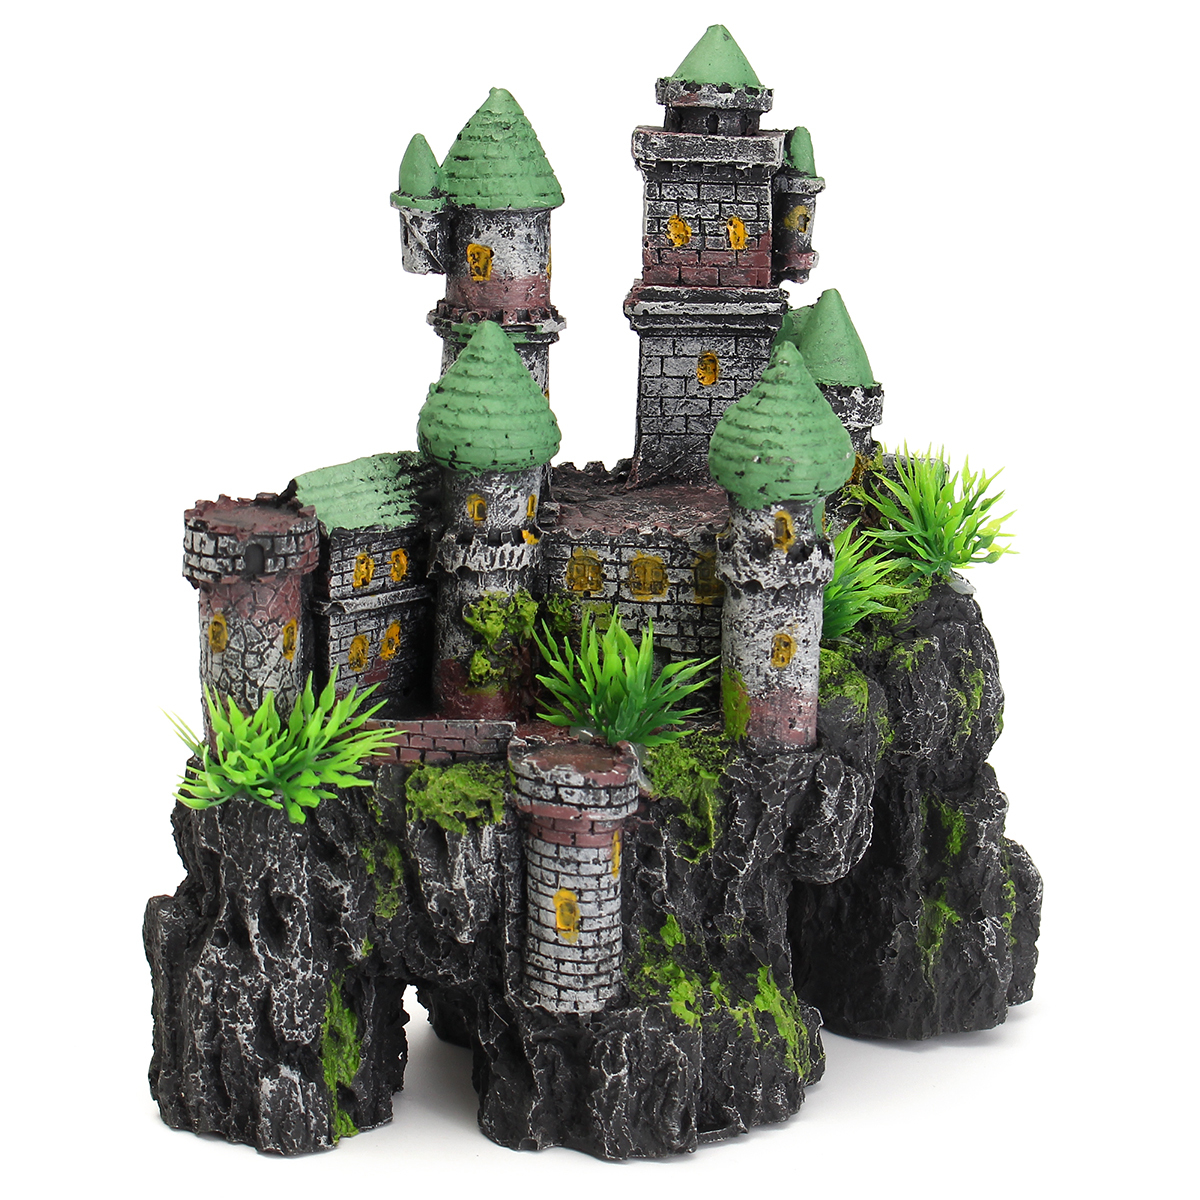 Aquarium resin medieval castle tower house fish tank for Aquarium house decoration